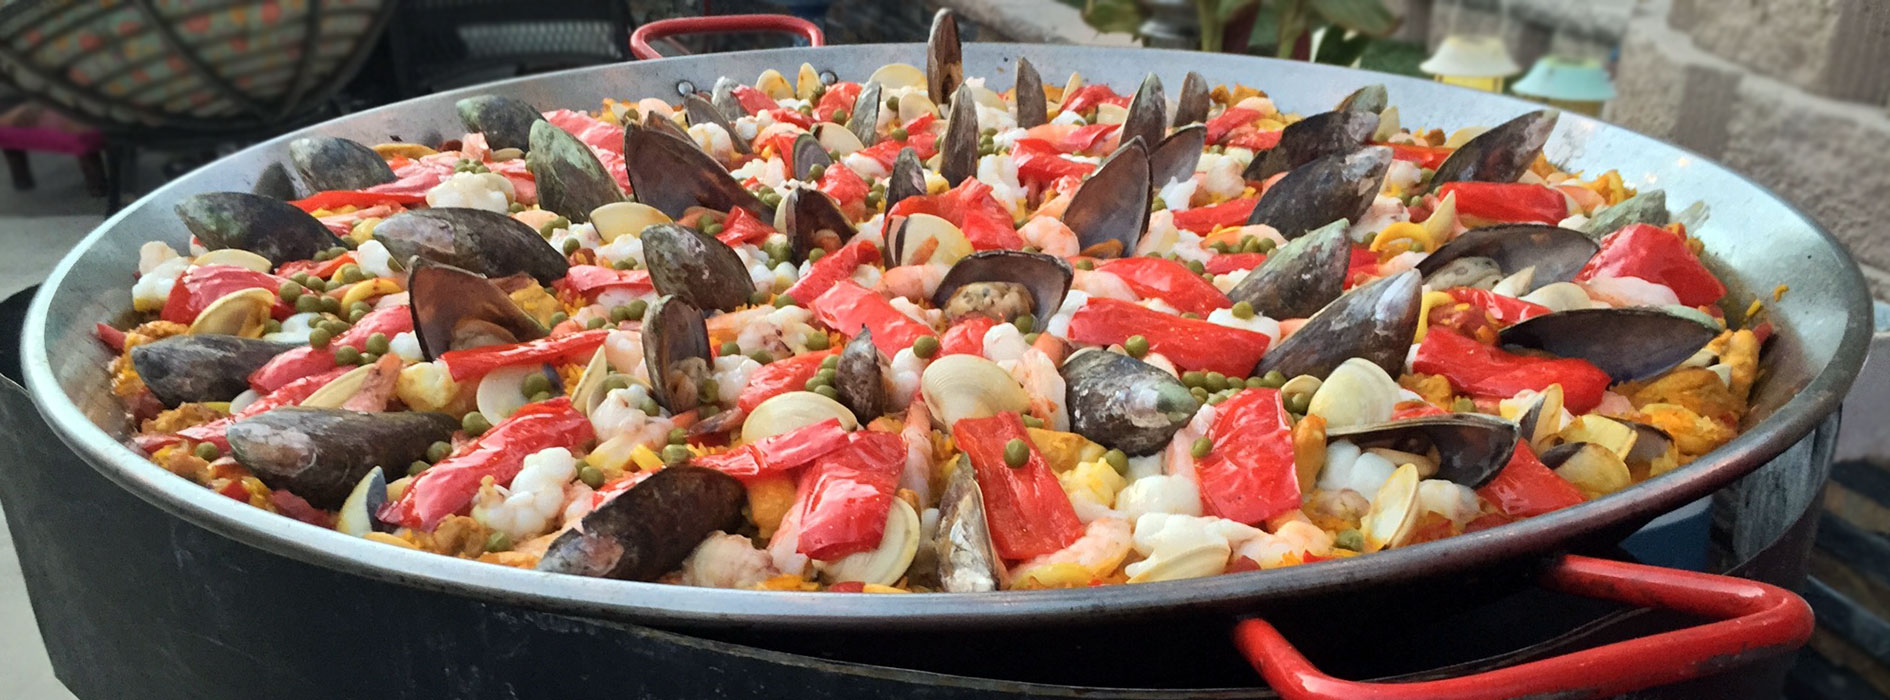 Paella Valenciana zoomed image for our Paella catering in southern california